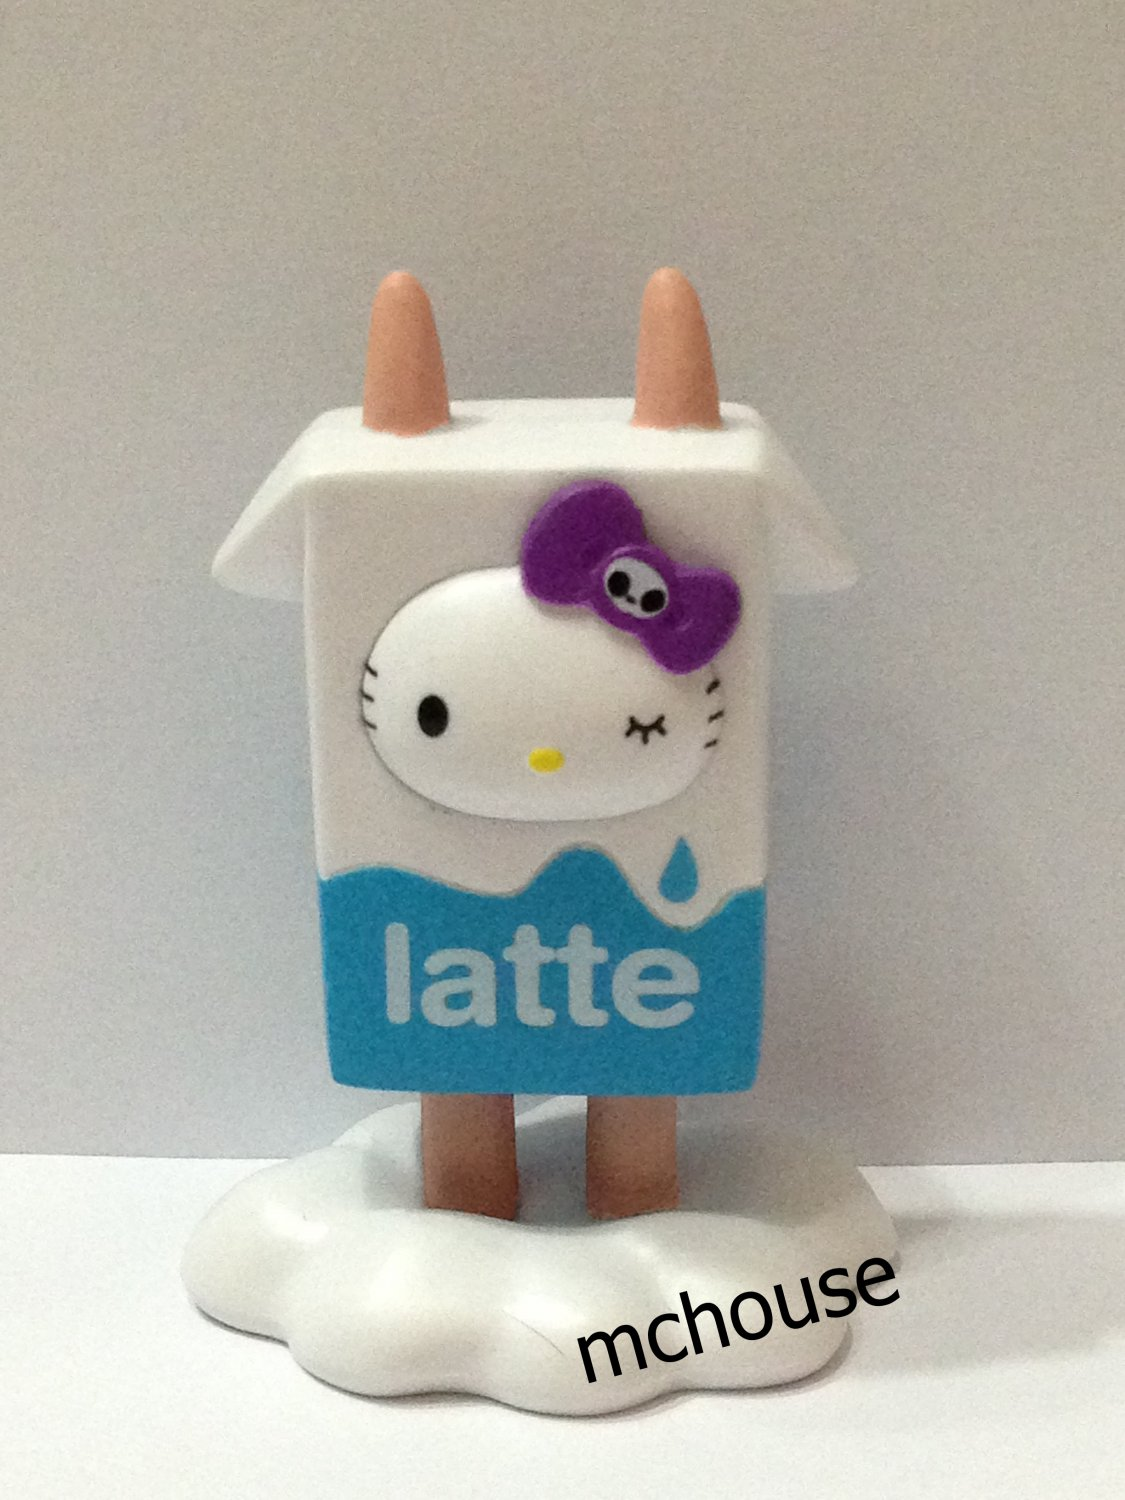 7-11 HK Sanrio Hello Kitty Tokidoki Wonderland Figurine Latte Kitty